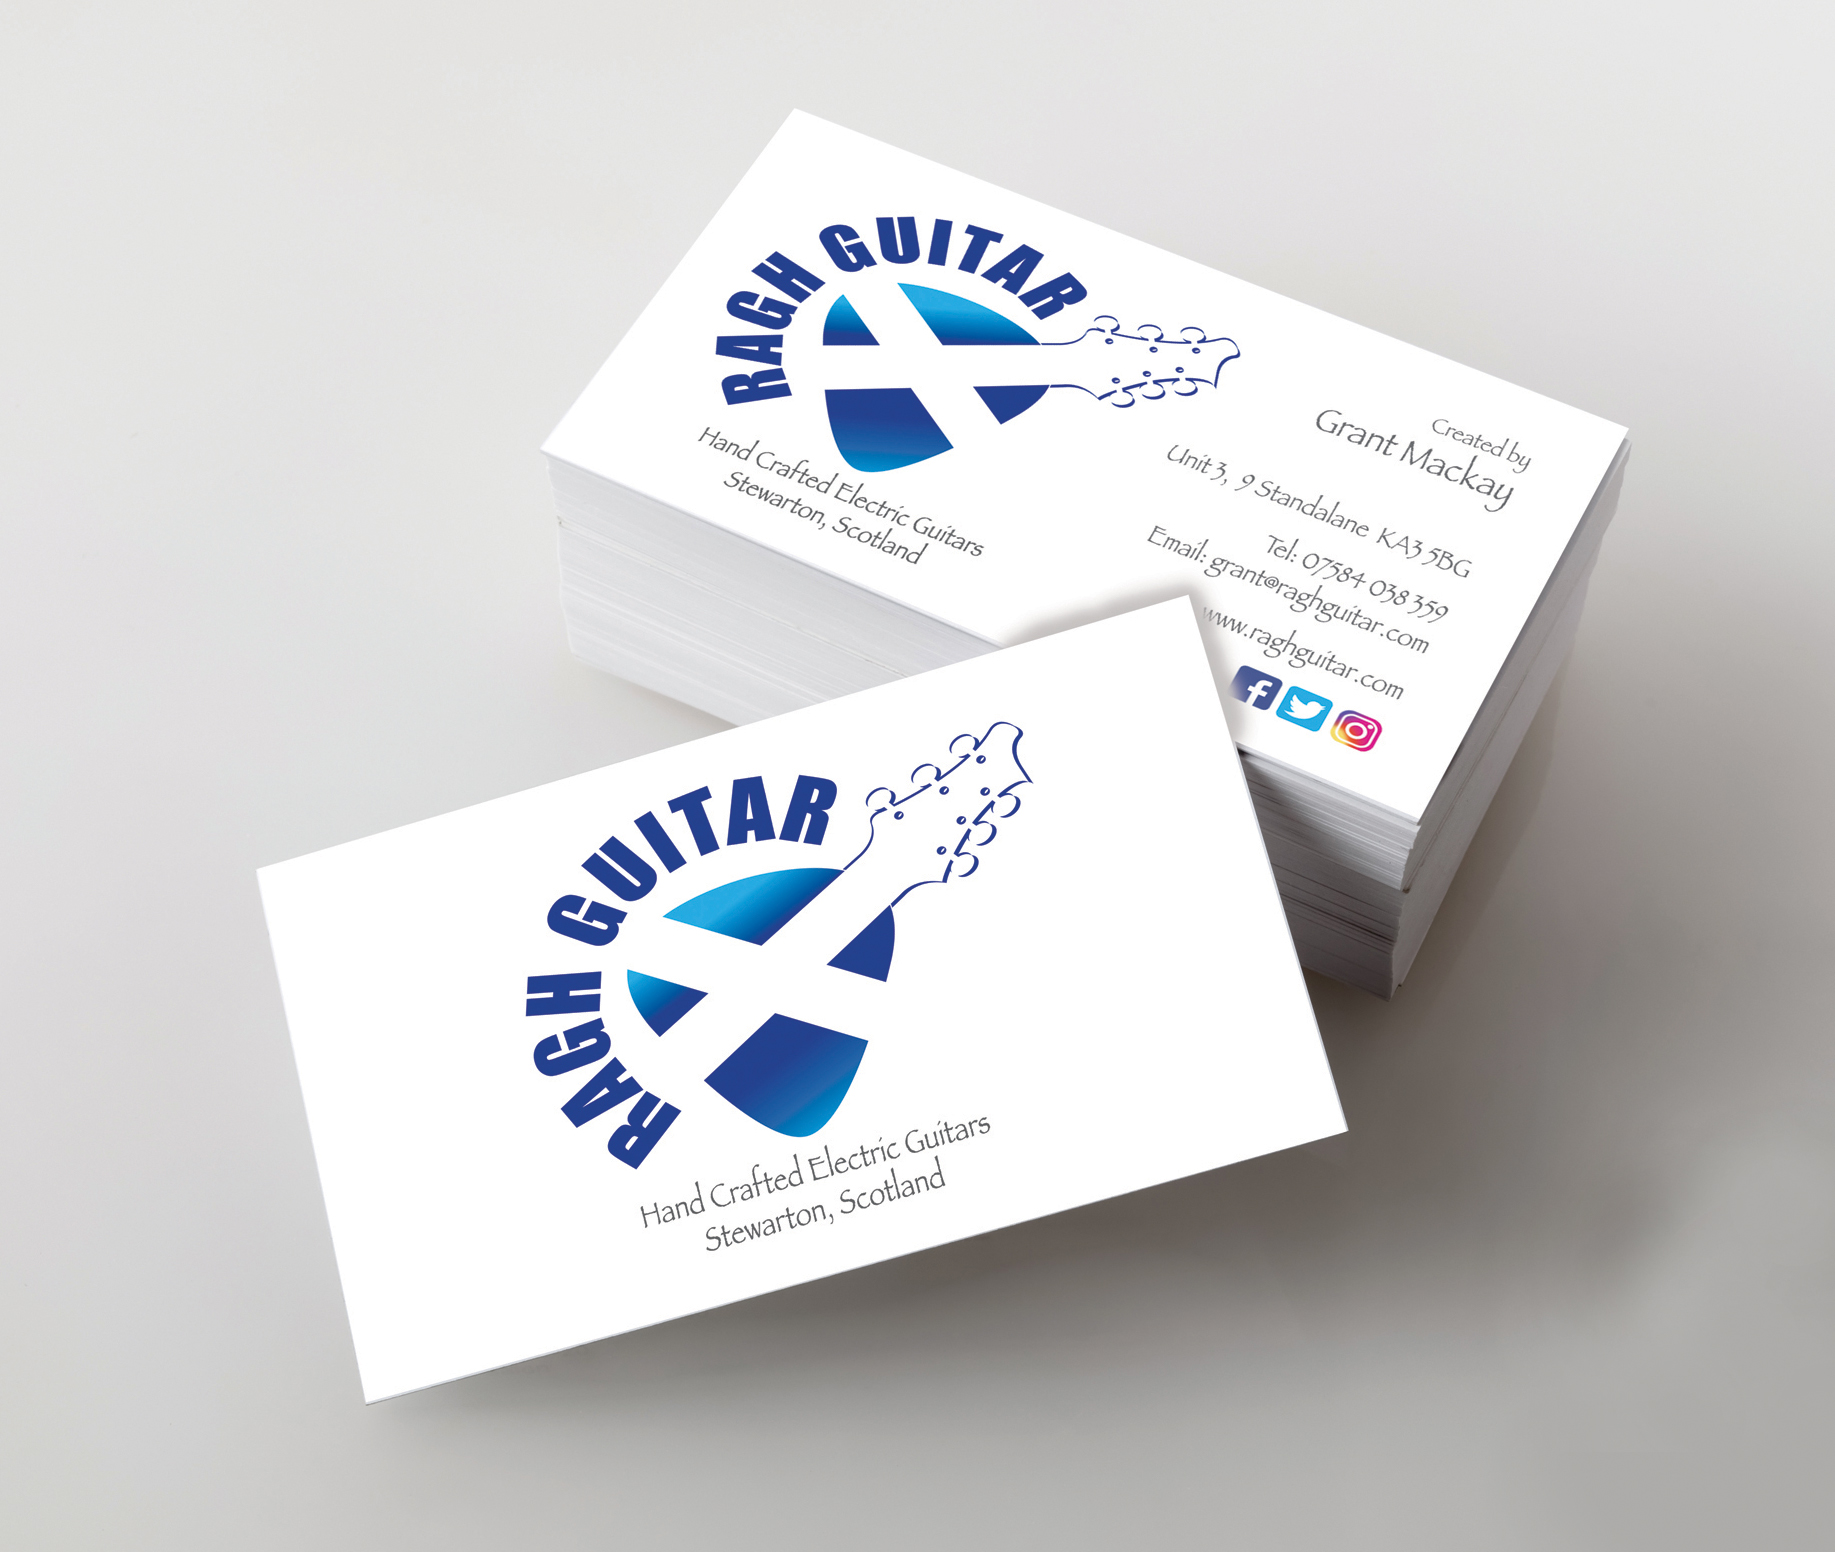 Premium silk double sided business cards the print room ayrshire photo of business cards template for branding identity isolated with clipping path reheart Images